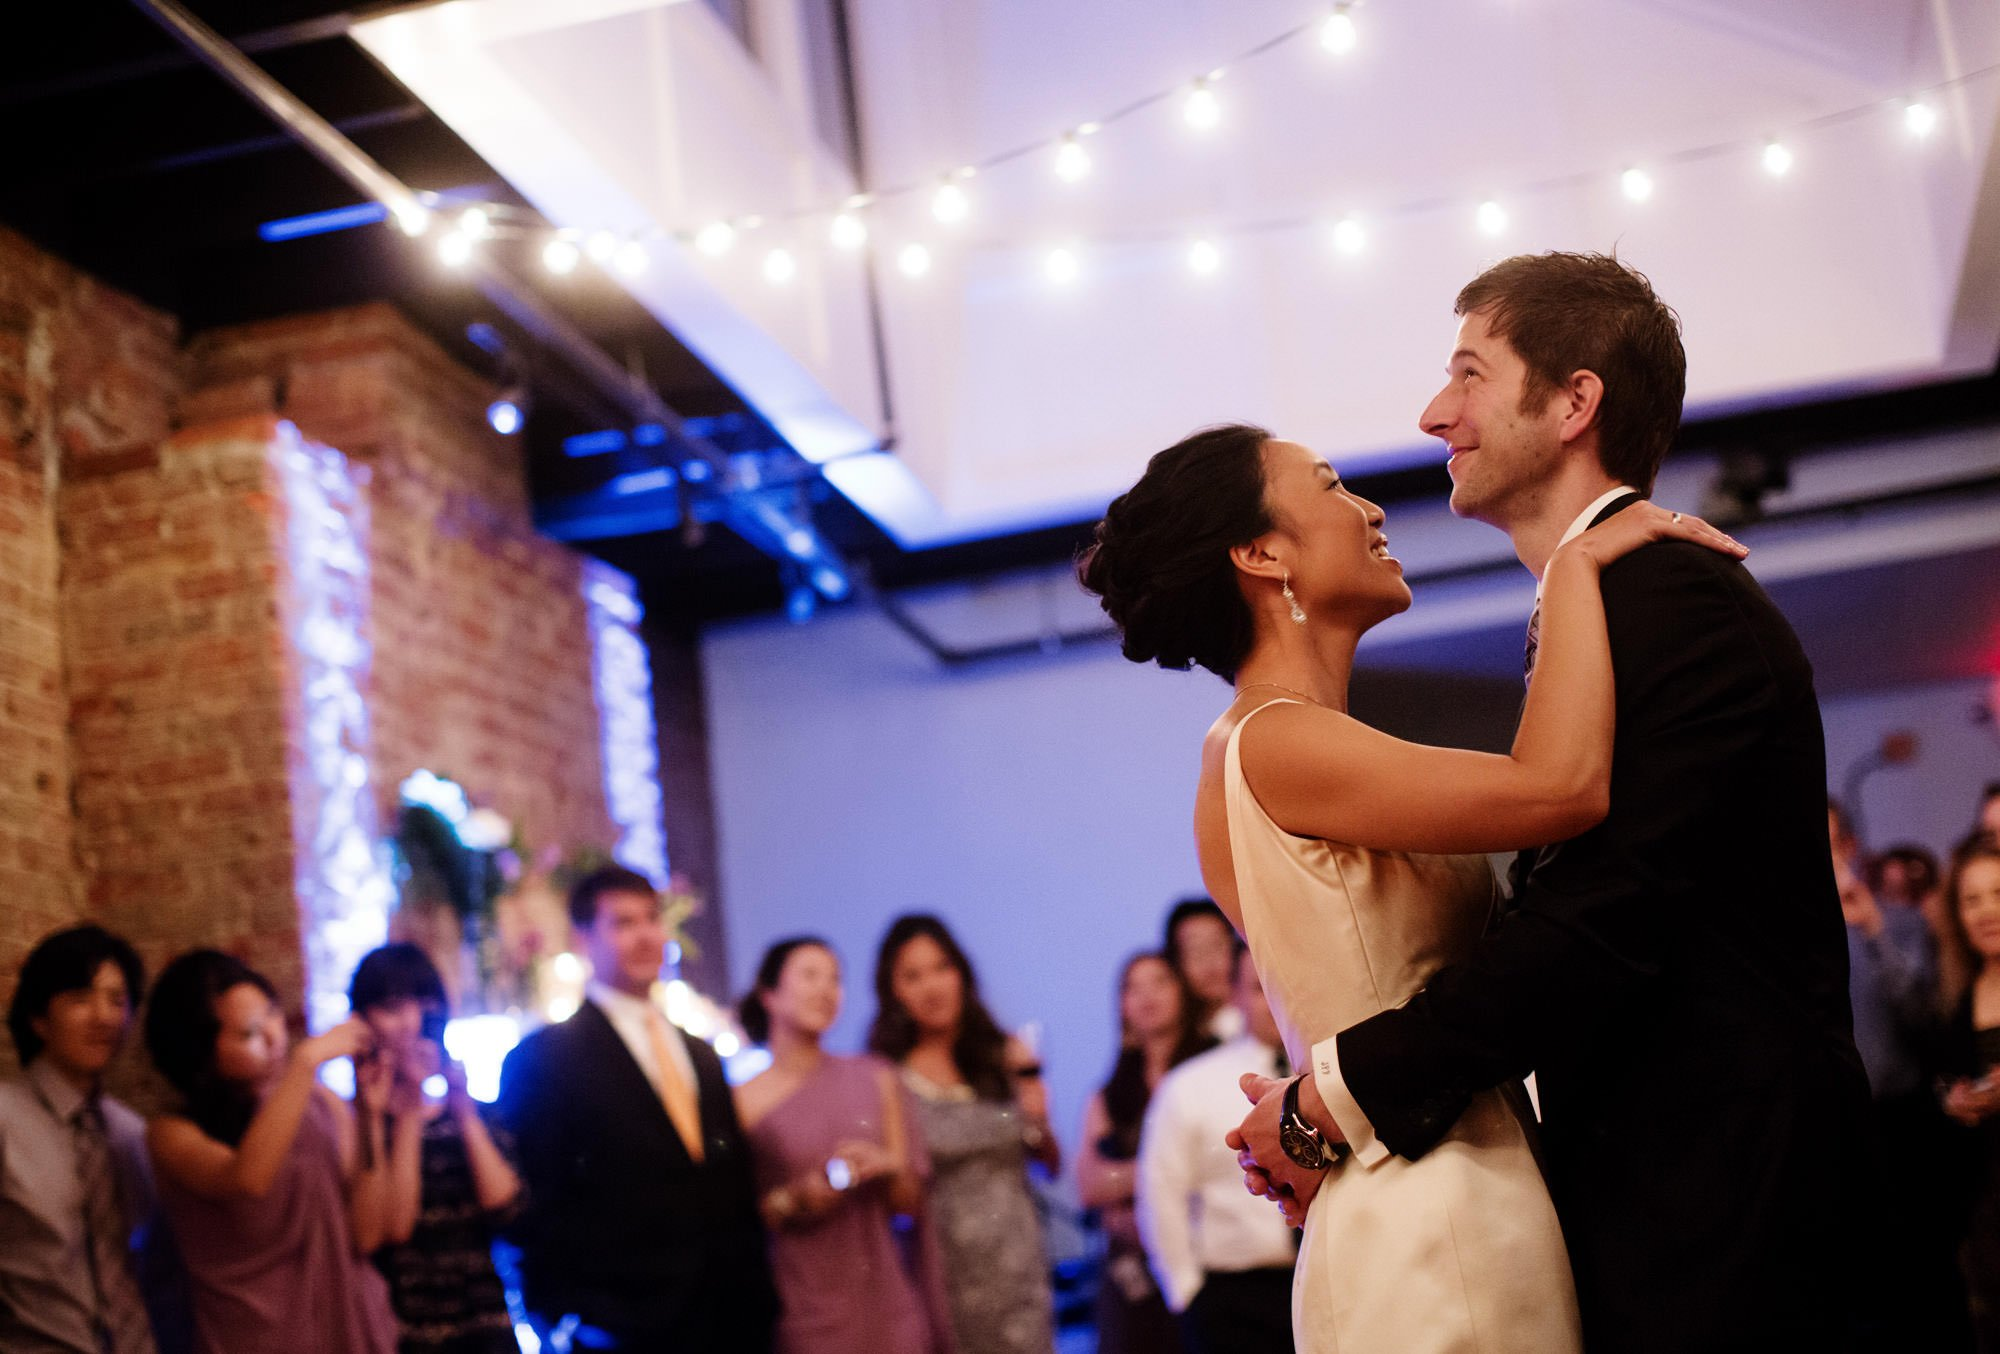 The bride and groom dance during their Epic Yoga Studio wedding in DC.